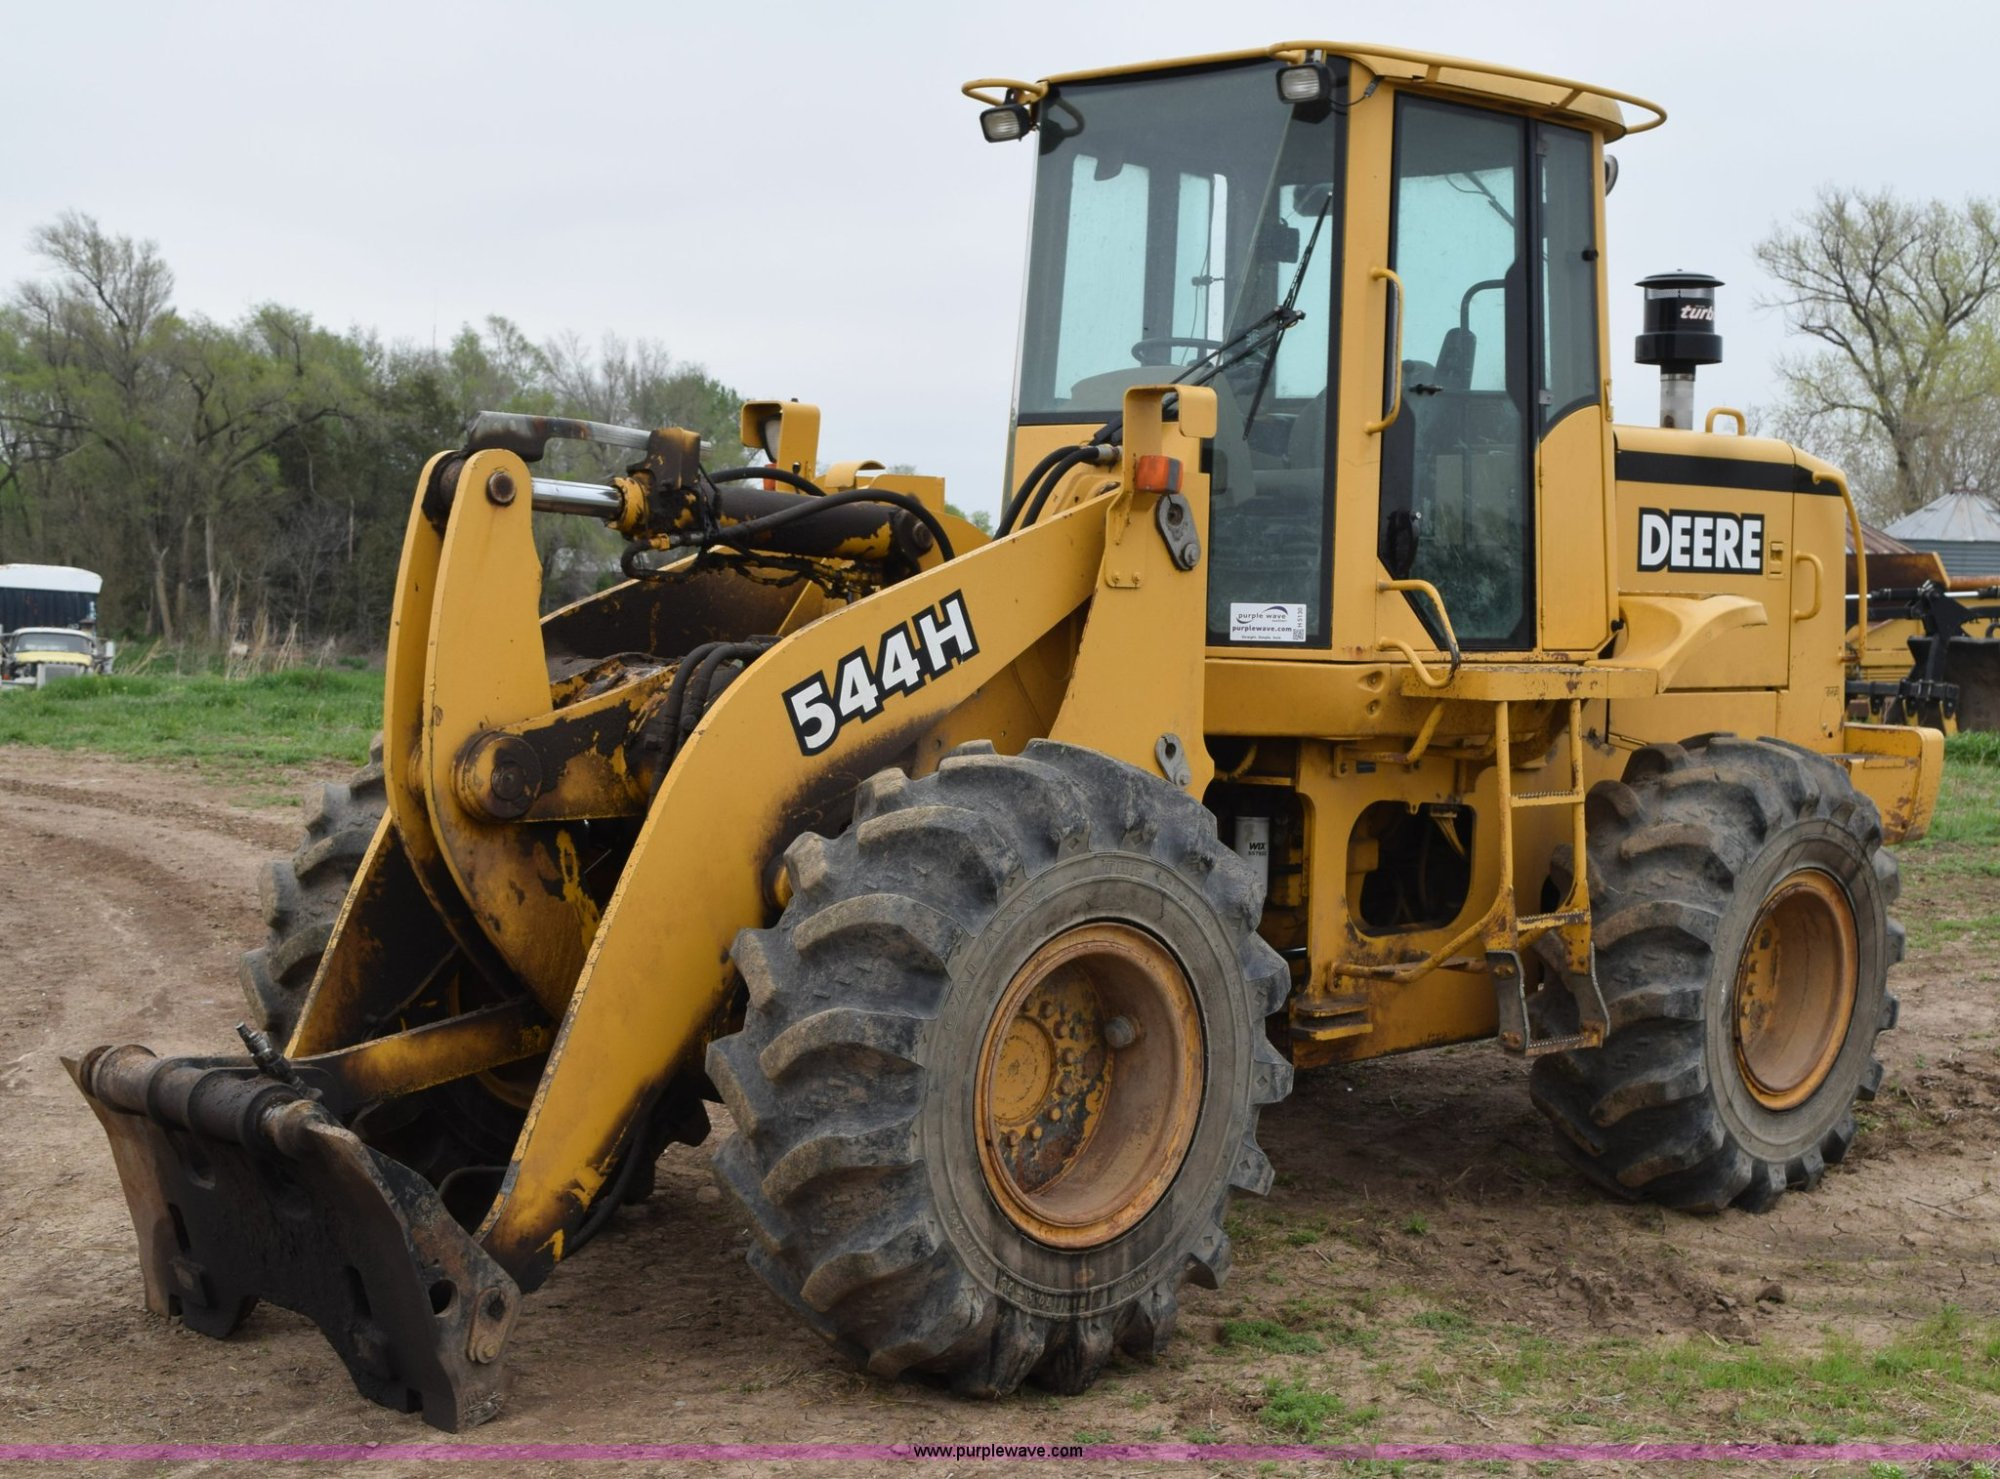 hight resolution of 1998 john deere 544h wheel loader item h5130 sold may 2 john deere wiring schematic 544h